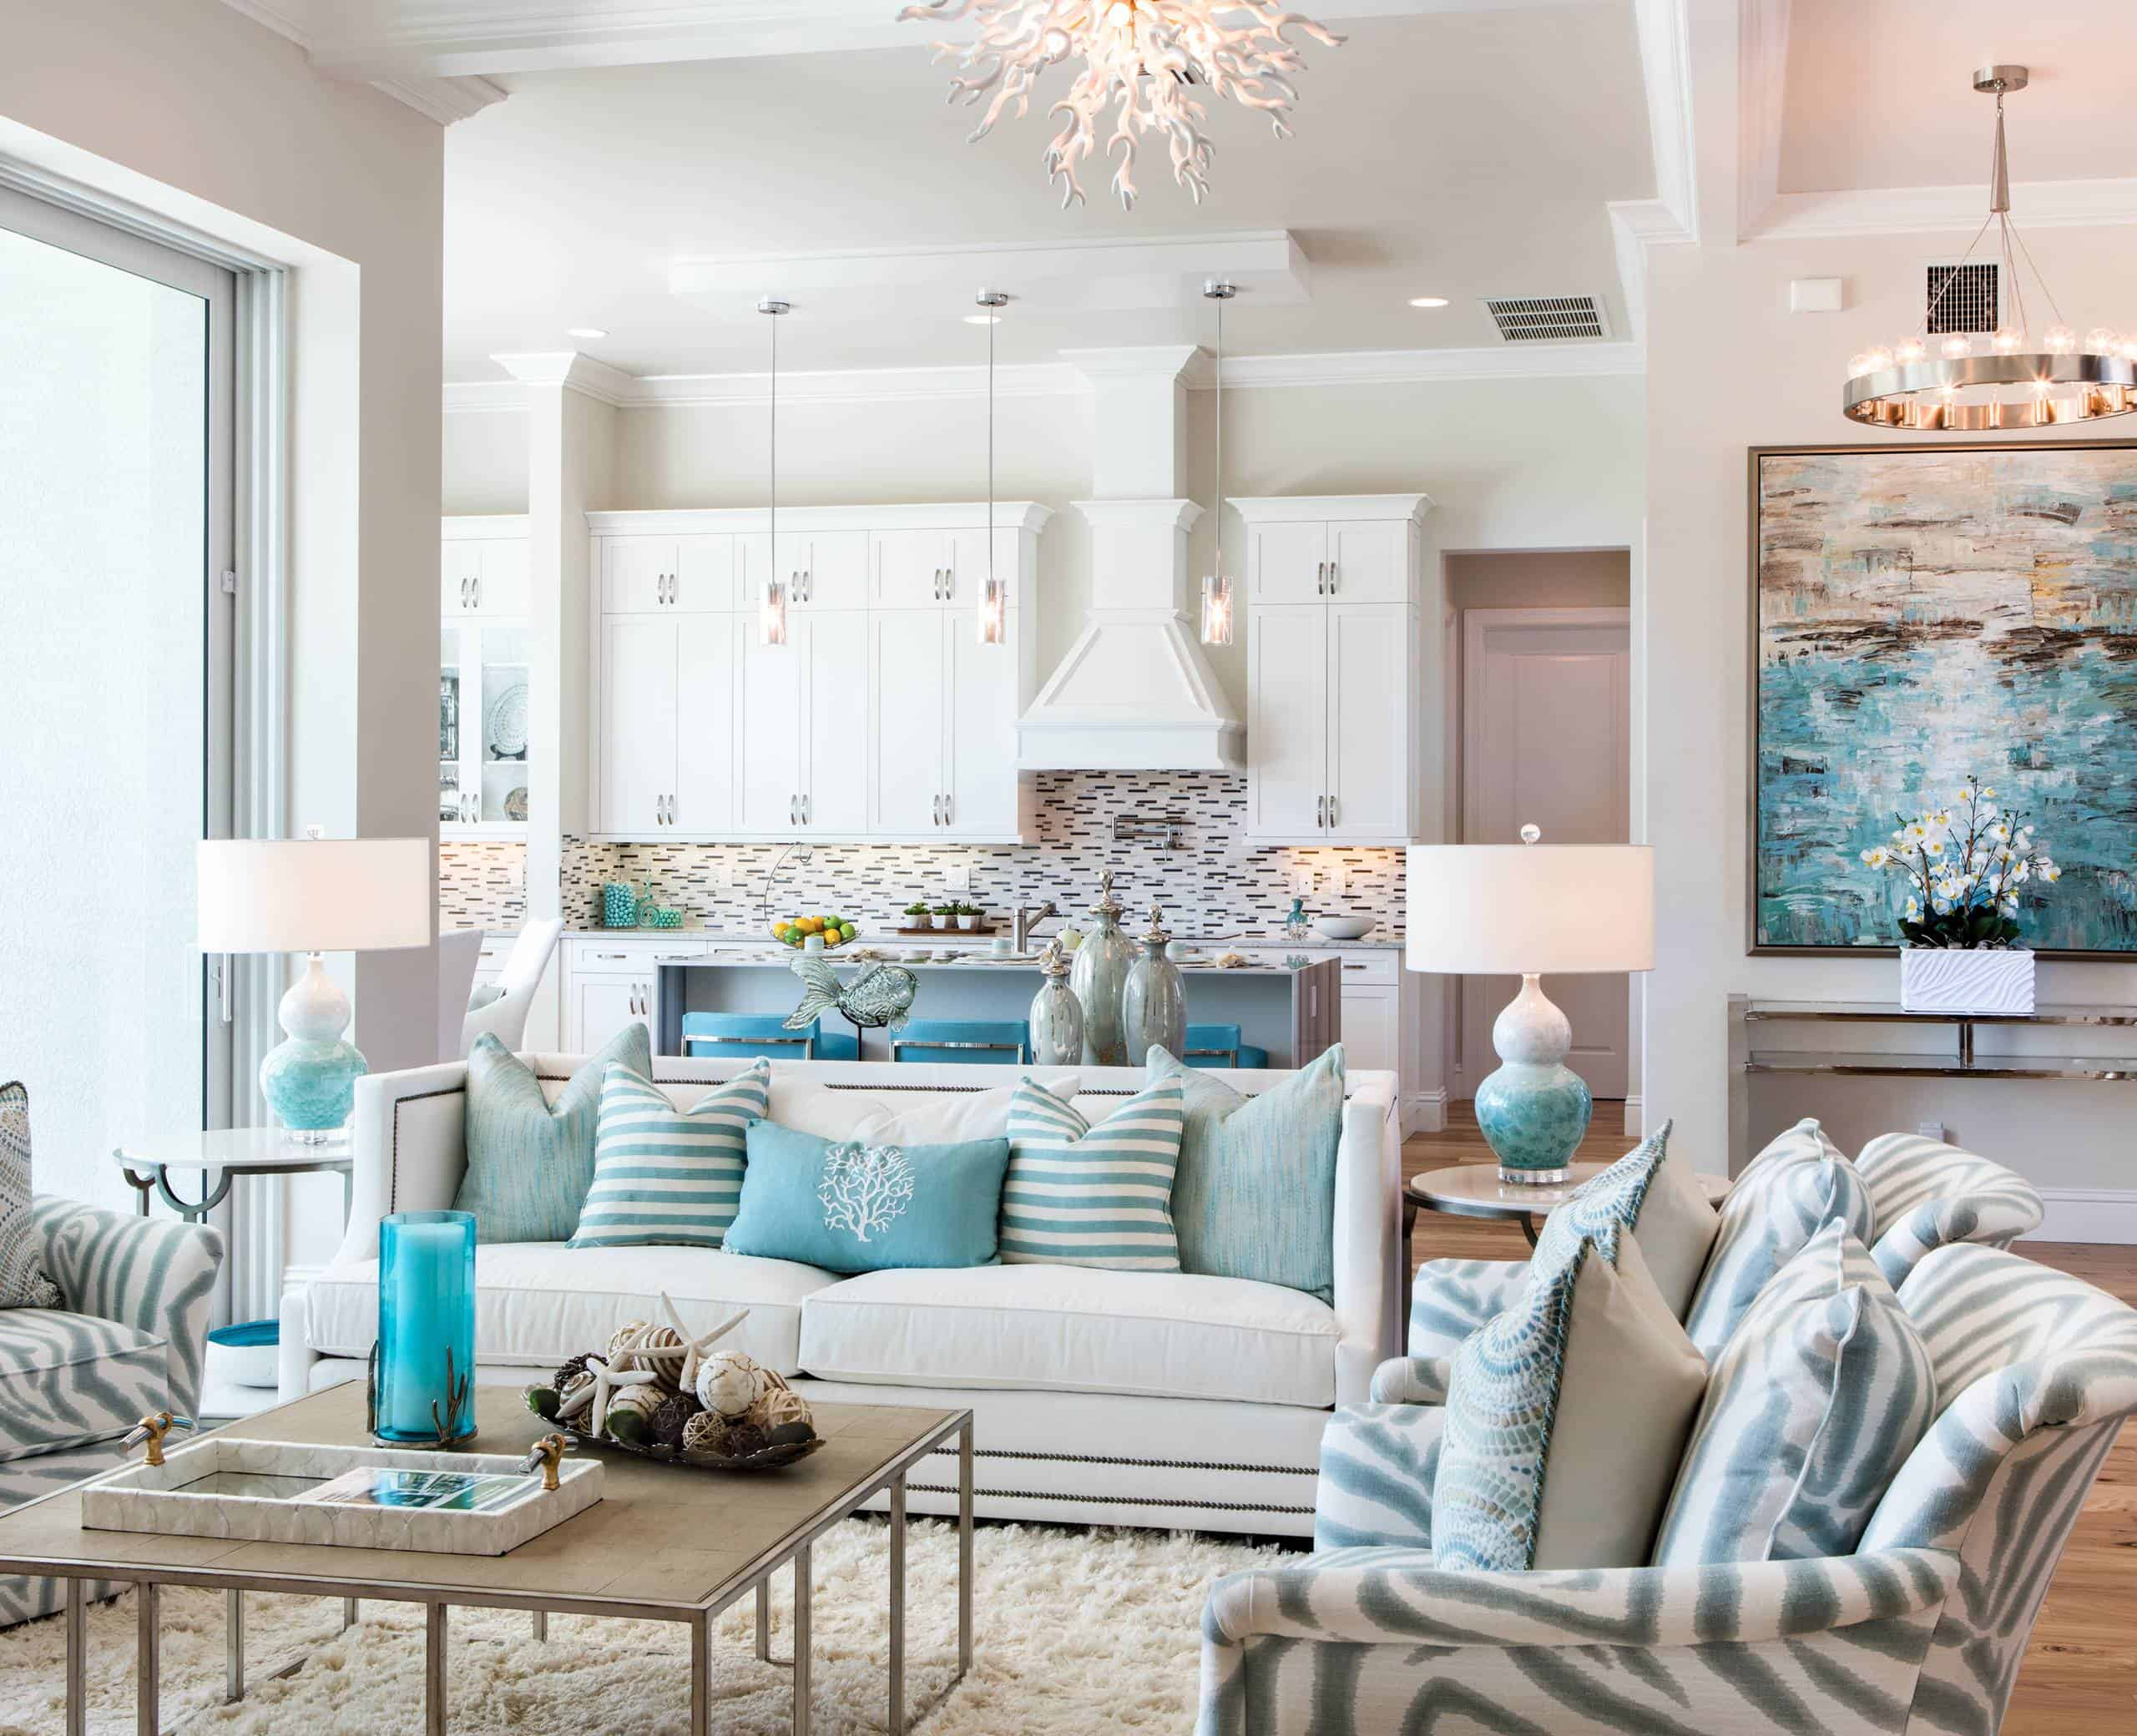 Coastal decor ideas for nautical themed decorating photos for How to decorate a beach house